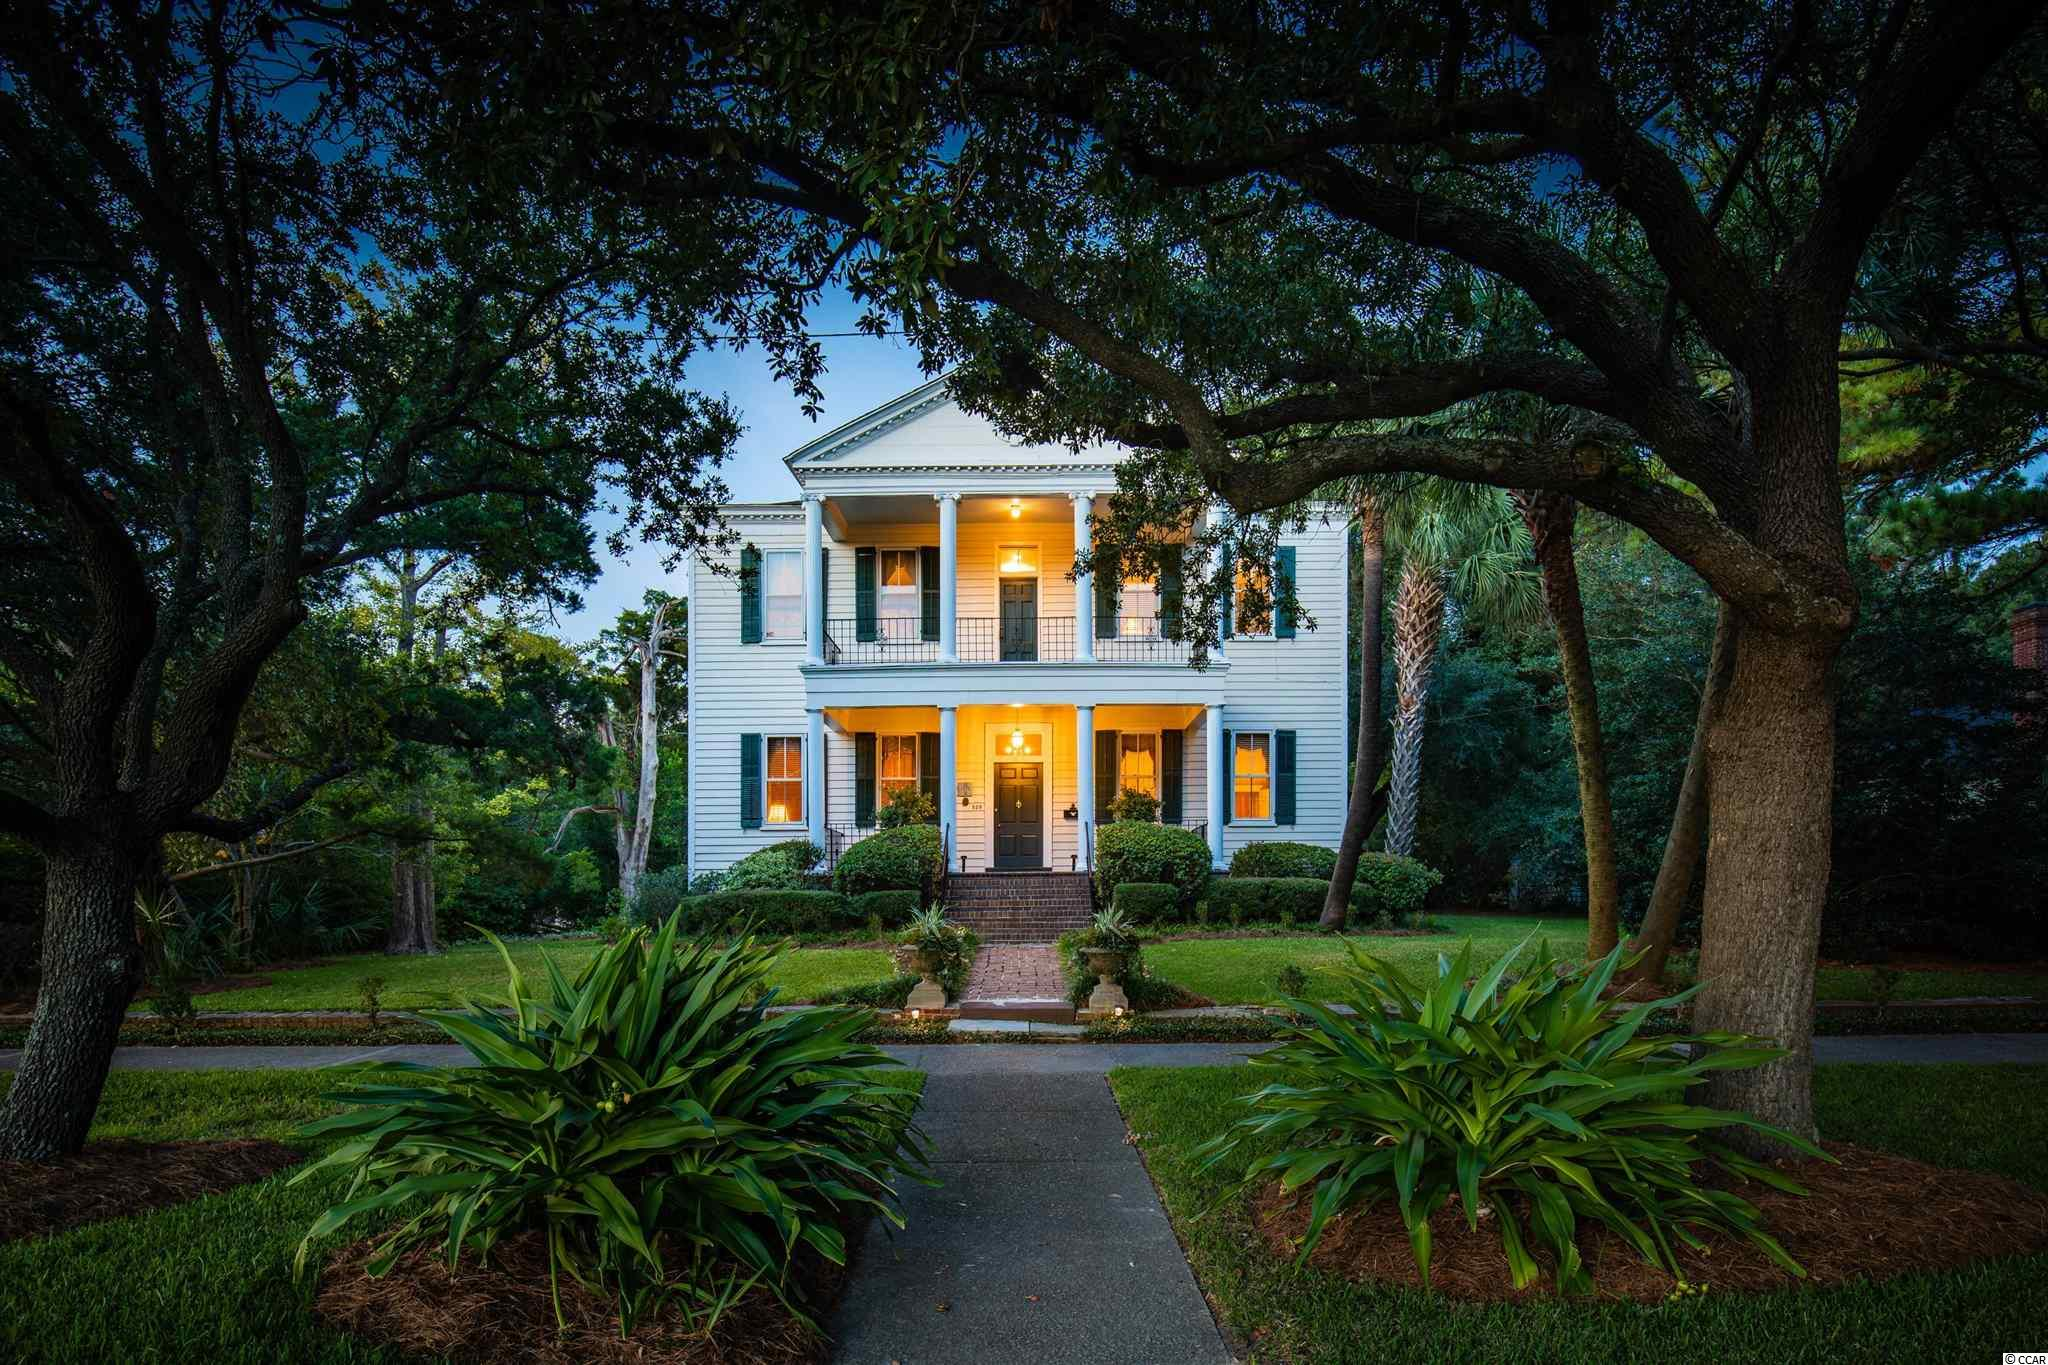 "Welcome to the Mary Man House.  Known as ""the mansion house on Bay Street,"" this elegant Georgian double house was built circa 1775 for in-town entertaining by Mansfield Plantation owner Miss Mary Man. She personally supervised the construction of her impressive dwelling on a high, double lot formerly owned by  Thomas Lynch, Sr., South Carolina delegate to the Second Continental Congress which produced the Declaration of Independence.    The Mary Man house is remarkable for how much original fabric remains intact -- from hand-hewn cypress construction resting  on a nearly 250-year-old brick  foundation to gleaming heart-of-pine flooring throughout. The house features a four over four plan with eight original fireplaces.  A classic portico provides a dramatic entrance for ""the grand house of the old settlement."" Entering the 5000 sq ft residence, a  wide  front hall reveals the magnificent space of  two formal rooms with twelve-foot ceilings:  a  living room with original  heart-of-pine paneling and a drawing room with half-moon and candlelight moldings.  A massive circa 1790 French Rococo giltwood mirror (a Man family piece that conveys) reflects the light of 19th-century Brockunier glass chandeliers (all four convey).  Beyond is the dining room, embellished with a large bay window and a pedimented cabinet for displaying silver, each with leaded glass.  You can entertain in the same spacious rooms and in the same gracious manner that Miss Mary Man enjoyed. The front hall staircase leads to the 18th-century ballroom (now the master bedroom and hall) where, in  December of 1812, legend says that the most famous woman of her time, Theodosia Burr Alston, of Oaks Plantation  (now part of Brookgreen Gardens)  was entertained at a ball held in her honor.(Theodosia, daughter of U.S. Vice President Aaron Burr -- who served under President Thomas Jefferson and who infamously killed Alexander Hamilton in a duel -- was the  wife of S.C. Governor Joseph Alston.  On the morning after the ball, Theodosia boarded the schooner Patriot,  which disappeared at sea, creating a nationwide sensation and mystery that endures to this day.)  An elaborate mantel and over-mantel crown the ballroom. The upstairs porch captures the breeze off Winyah Bay and shows to perfection the manicured grounds with native live oaks, palmettos, and azaleas.  Off the porch stands a gingko tree, planted by the second owner's family more than 100 years ago to honor one of their famous naval ancestors, Commodore Matthew C. Perry, who opened Japan to the West in 1854.  To the rear of the property past the foundation of the original kitchen stands a charming circa 1800 two-room kitchen building that was relocated to the property in 2008 and features a large central chimney.  With only two owners, the Man family of Mansfield Plantation and the Hazard family of Newport, Rhode Island, this remarkable 18th century dwelling was adapted to changing lifestyles and times over nine generations without the loss of its architectural integrity -- interior or exterior.  You, as only the third owner of the Mary Man house since the time of the  American Revolution, have an extraordinary opportunity to add your story to its amazing history.  This exceptional  property is located in the heart of the historic district and overlooks the colonial seaport of Georgetown, S.C.  International airports are conveniently located 90 minutes to the south in Charleston and 45 minutes to the north in Myrtle Beach.  Georgetown also boasts its own private airport and was voted USA Today's best small coastal city in America."